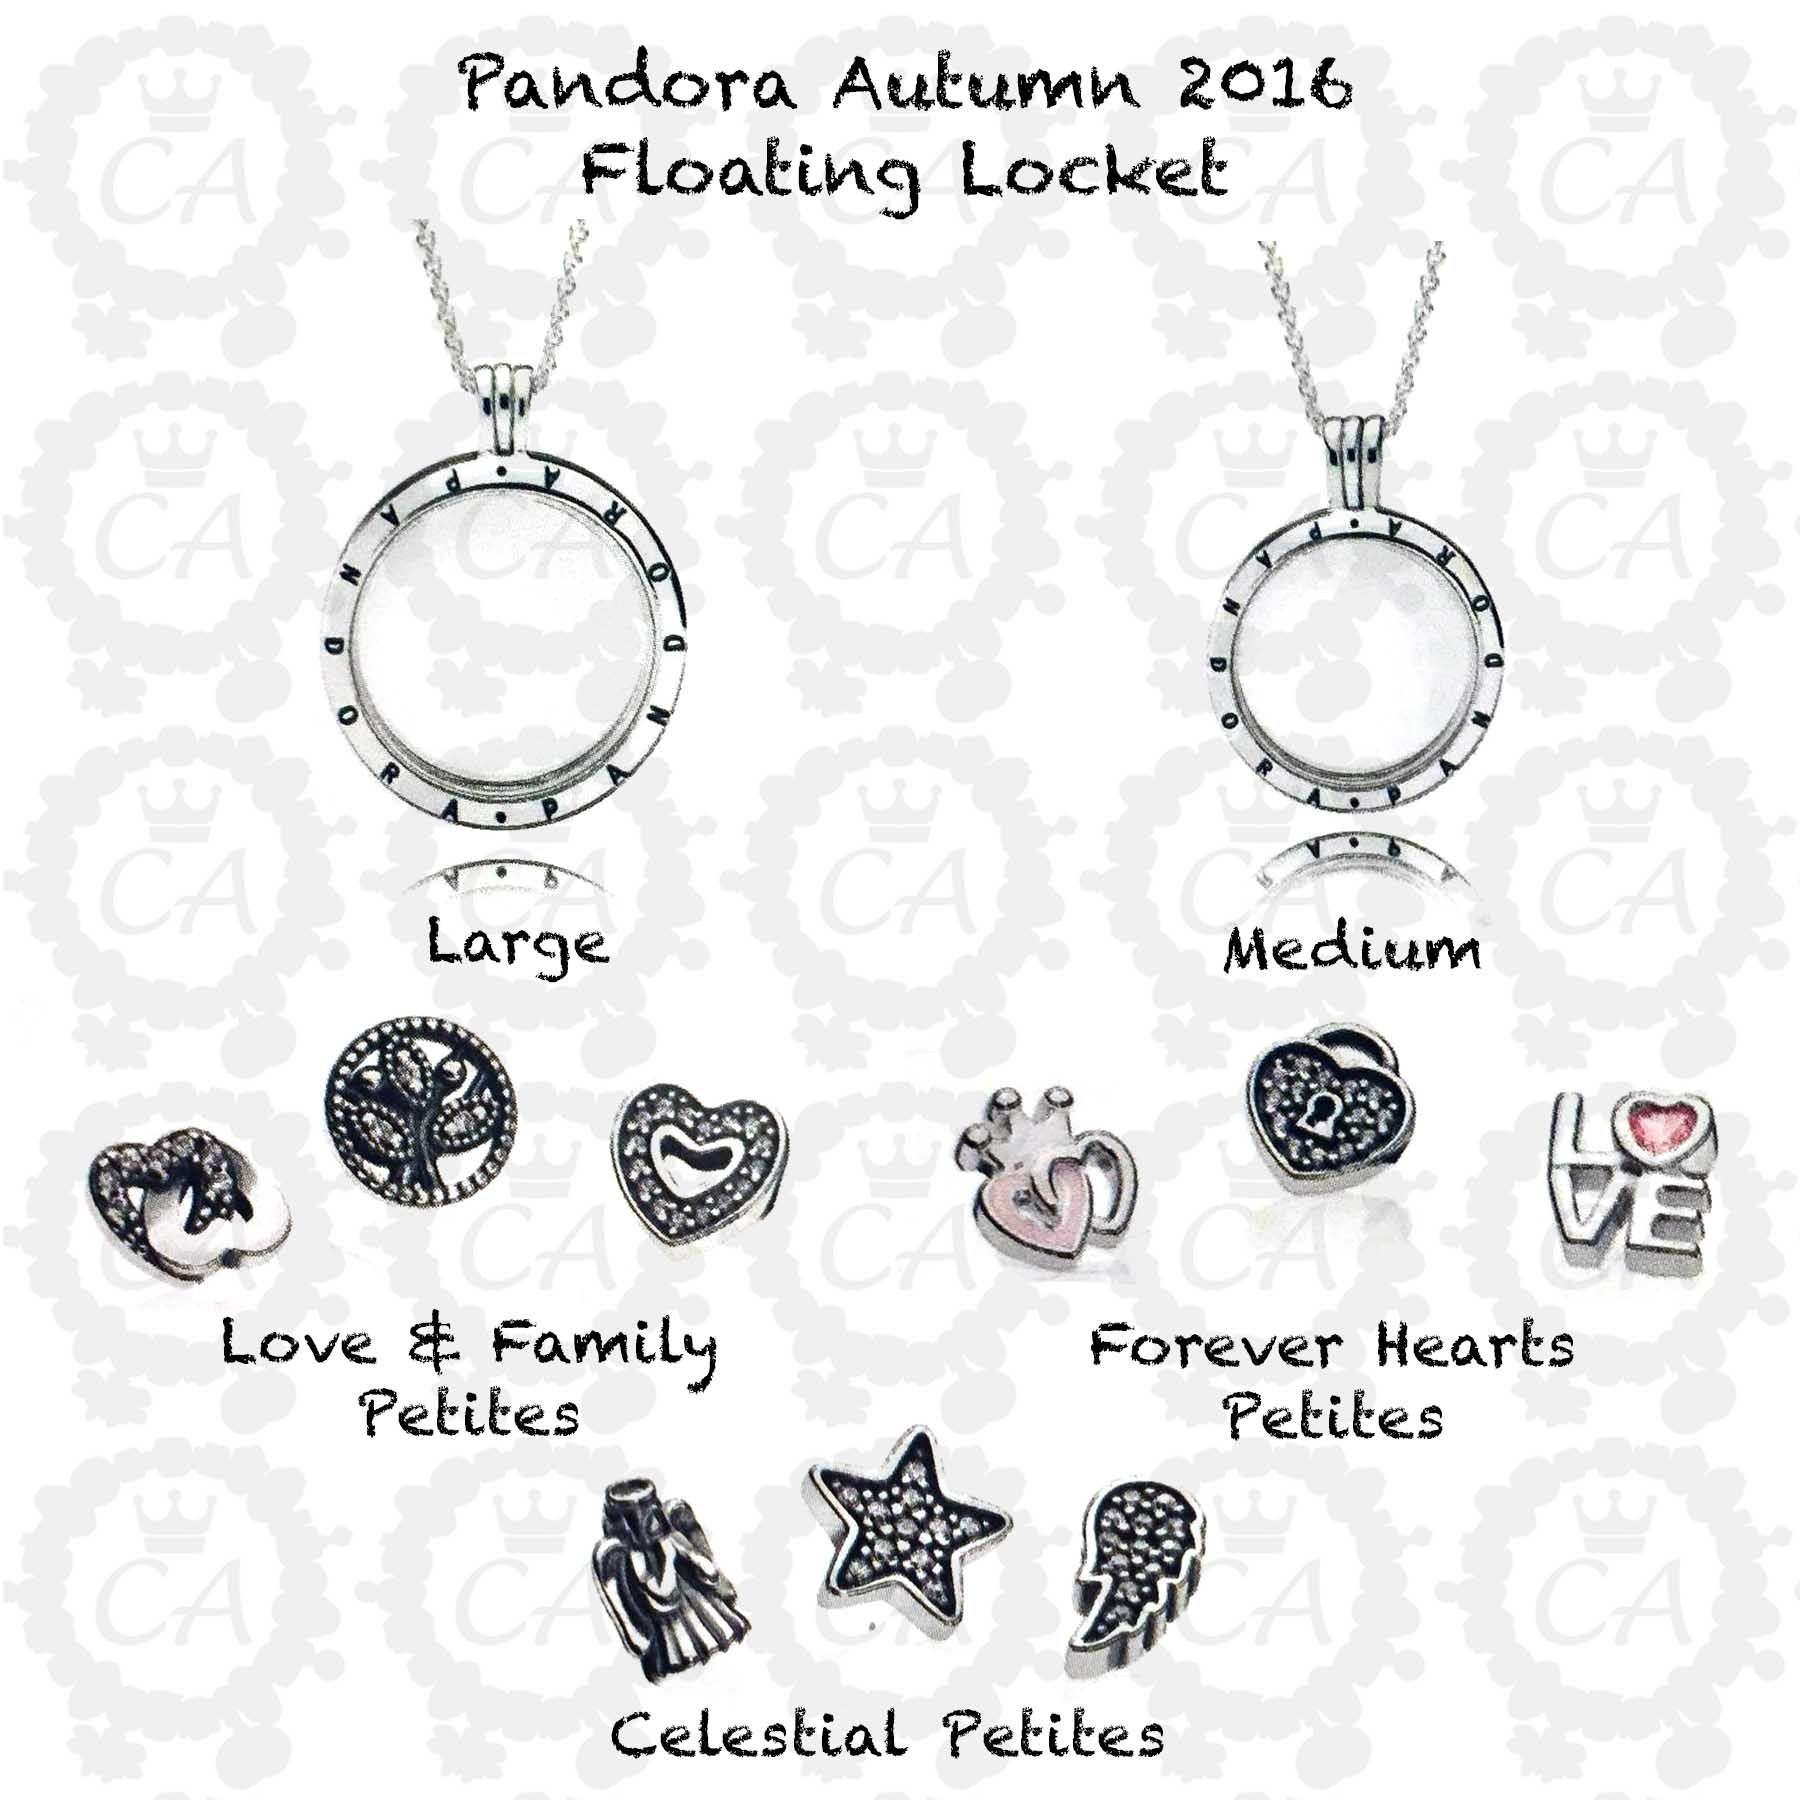 I Want The Large With Love Amp Family Petite Set Pandora